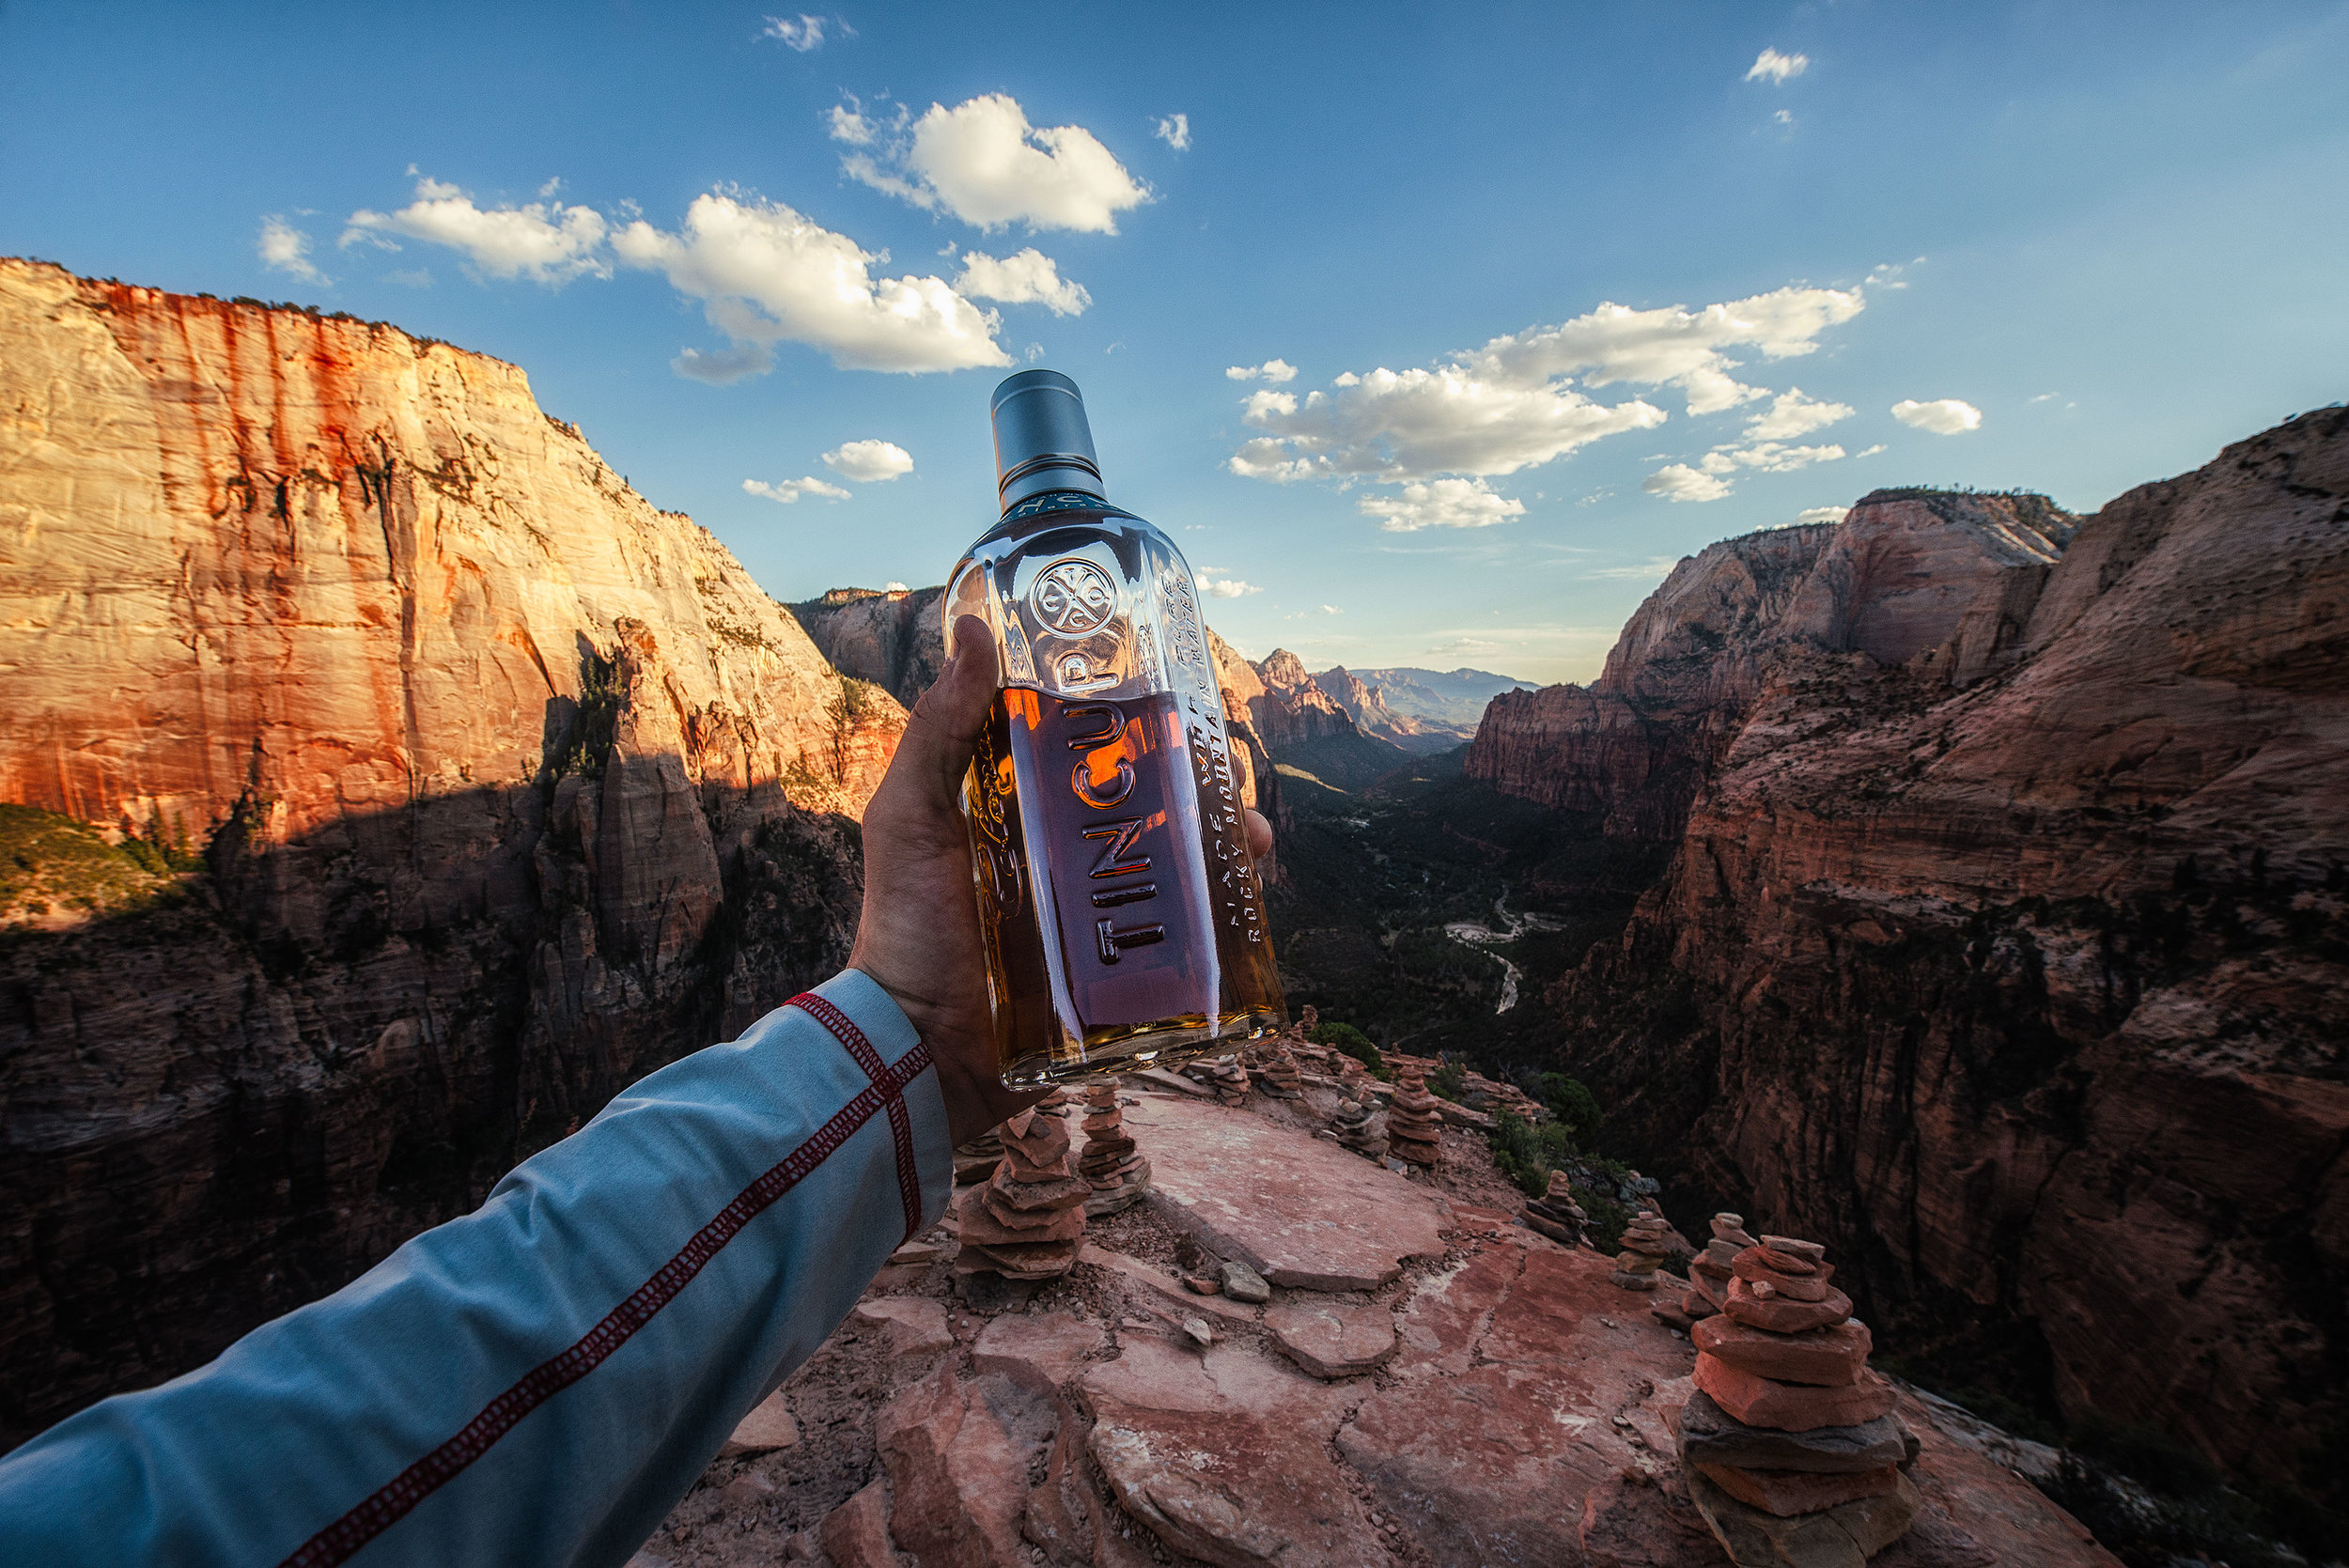 austin-trigg-whiskey-lifestyle-zion-product-TINCUP-Hand-Held-pov-angels-landing-valley.jpg